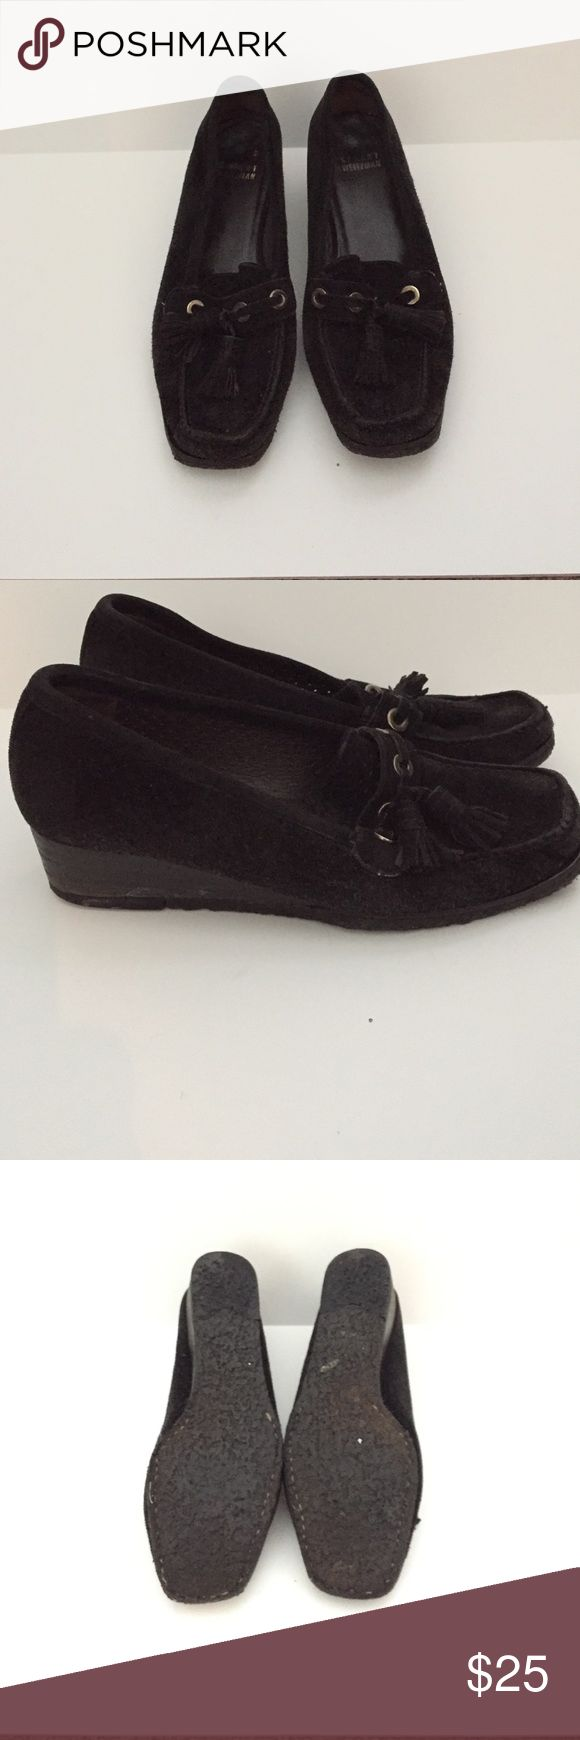 """Stuart Weitzman black suede wedge loafer Sz 7. Consignment item. Slight wear in the soles. Black suede wedge loafer with a 1.5"""" heel. Great shoes for the boot cut or skinny jeans.  Please no trades or offers. Stuart Weitzman Shoes Flats & Loafers"""